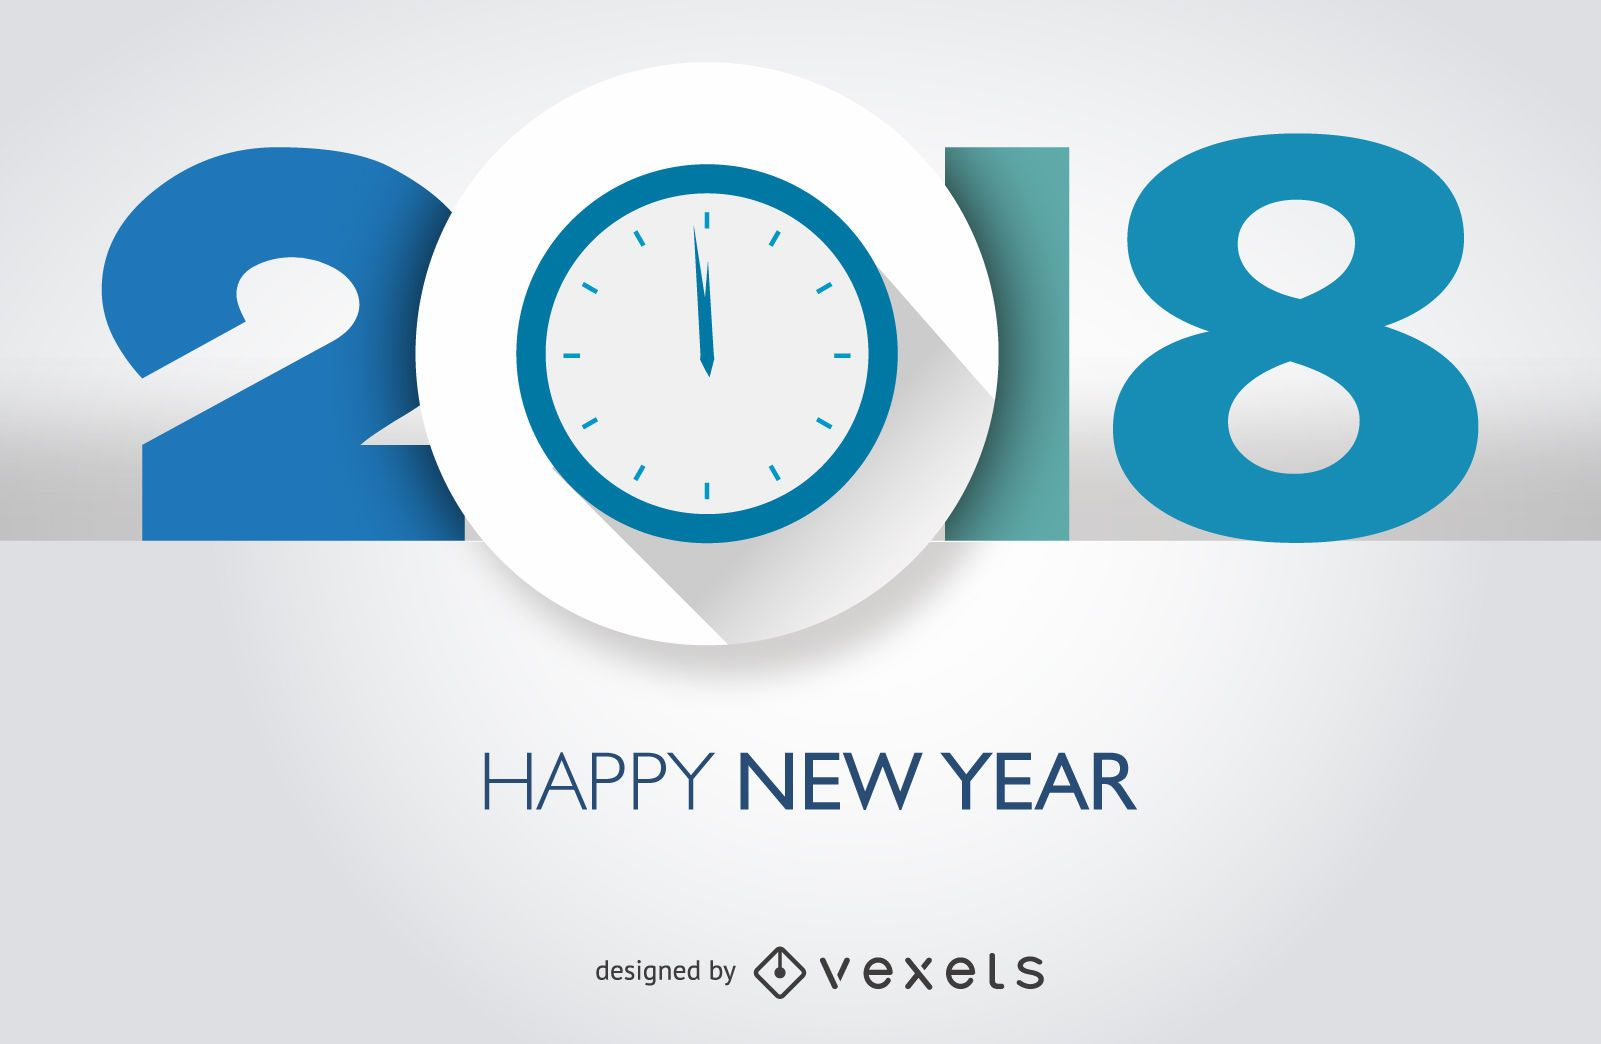 2018 New Year design with clock - Vector download